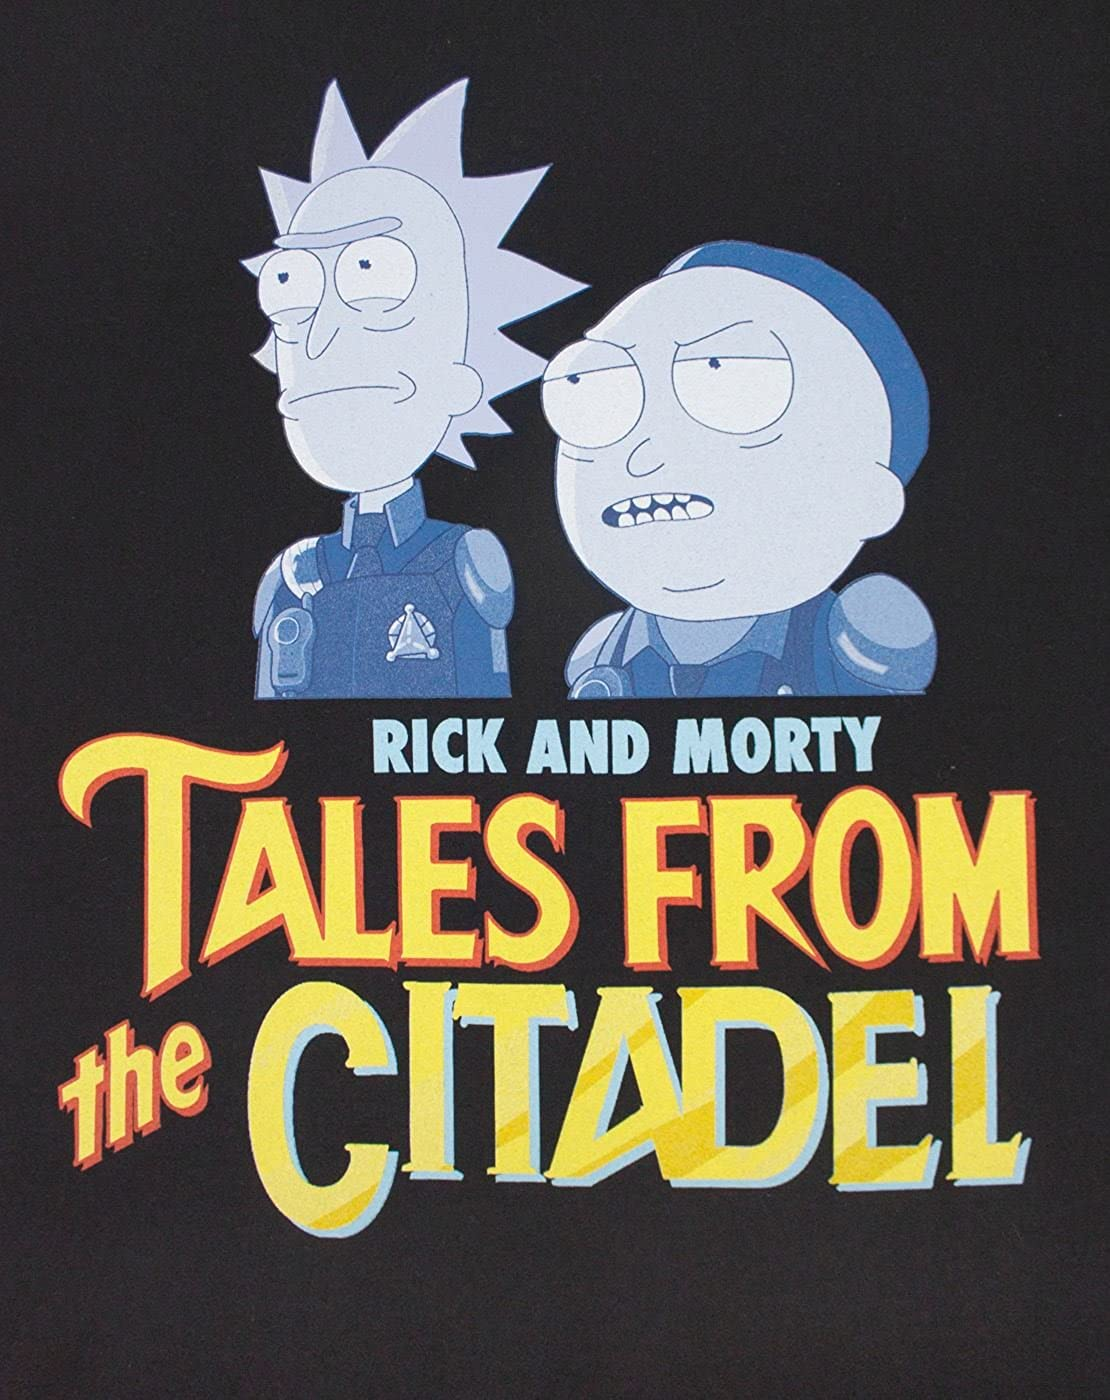 Rick and Morty Tales from The Citadel Mens T-Shirt: Amazon.es: Ropa y accesorios